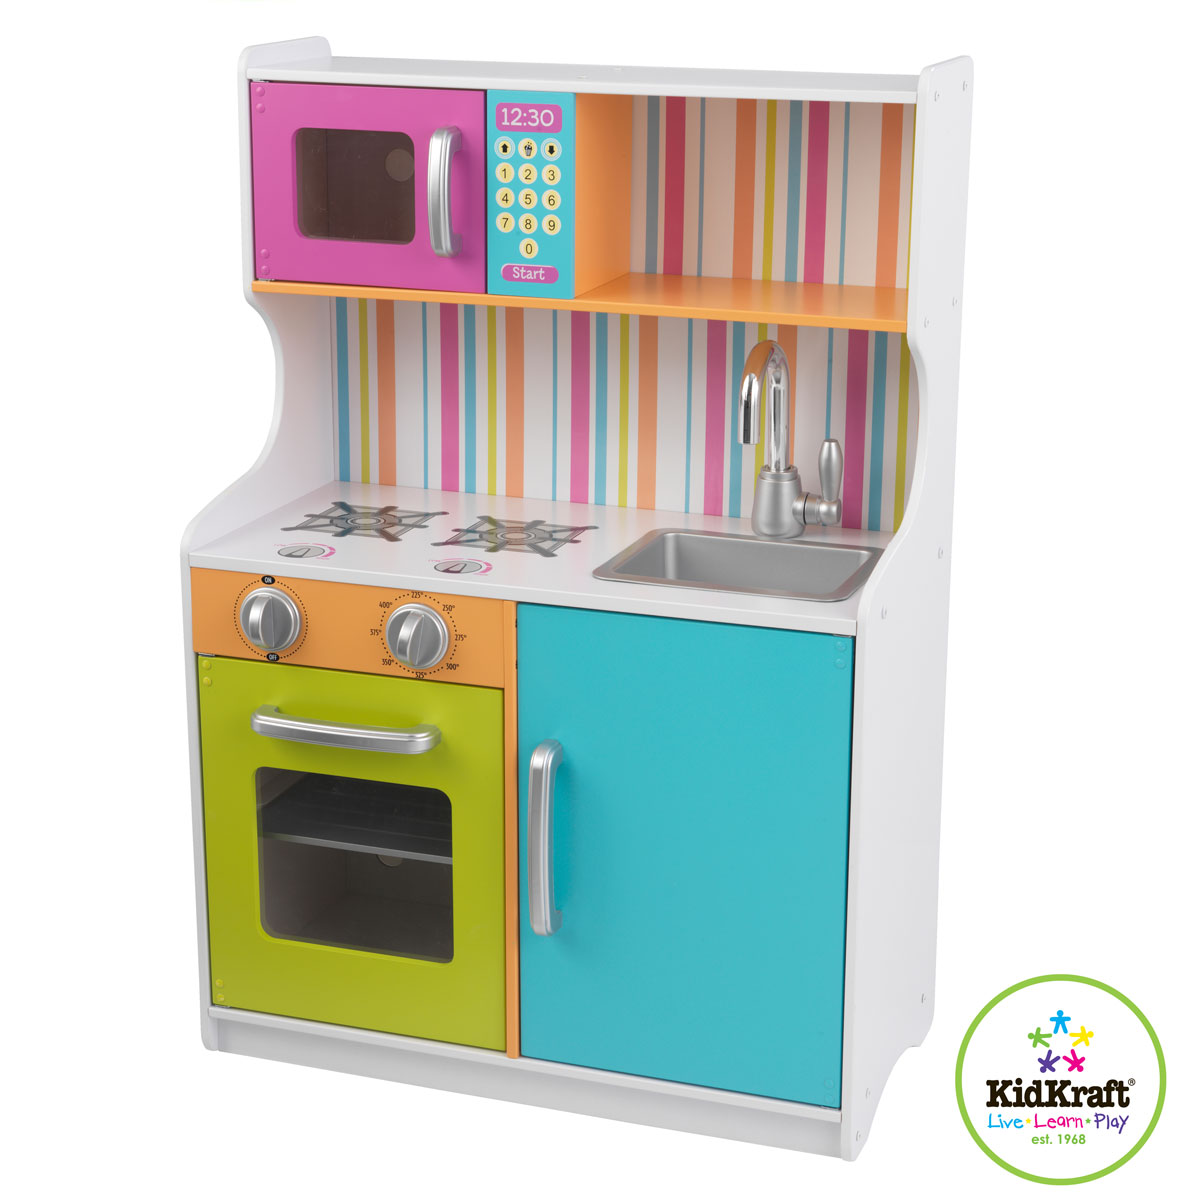 Kidkraft bright toddler kitchen 53294 Bright kitchen